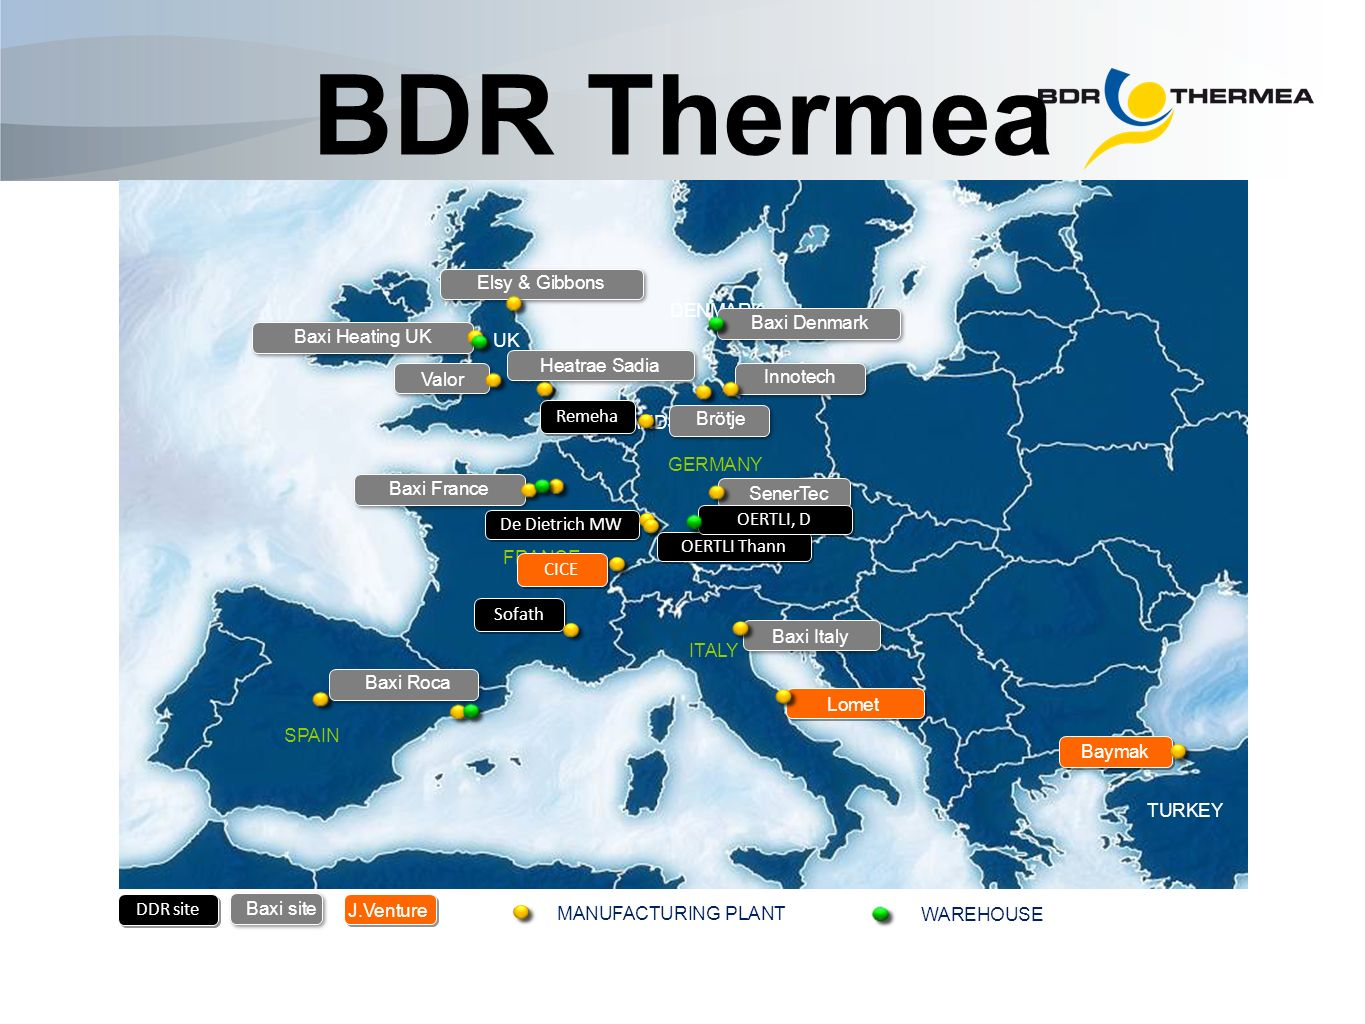 BDR Thermea currently has 21 locations